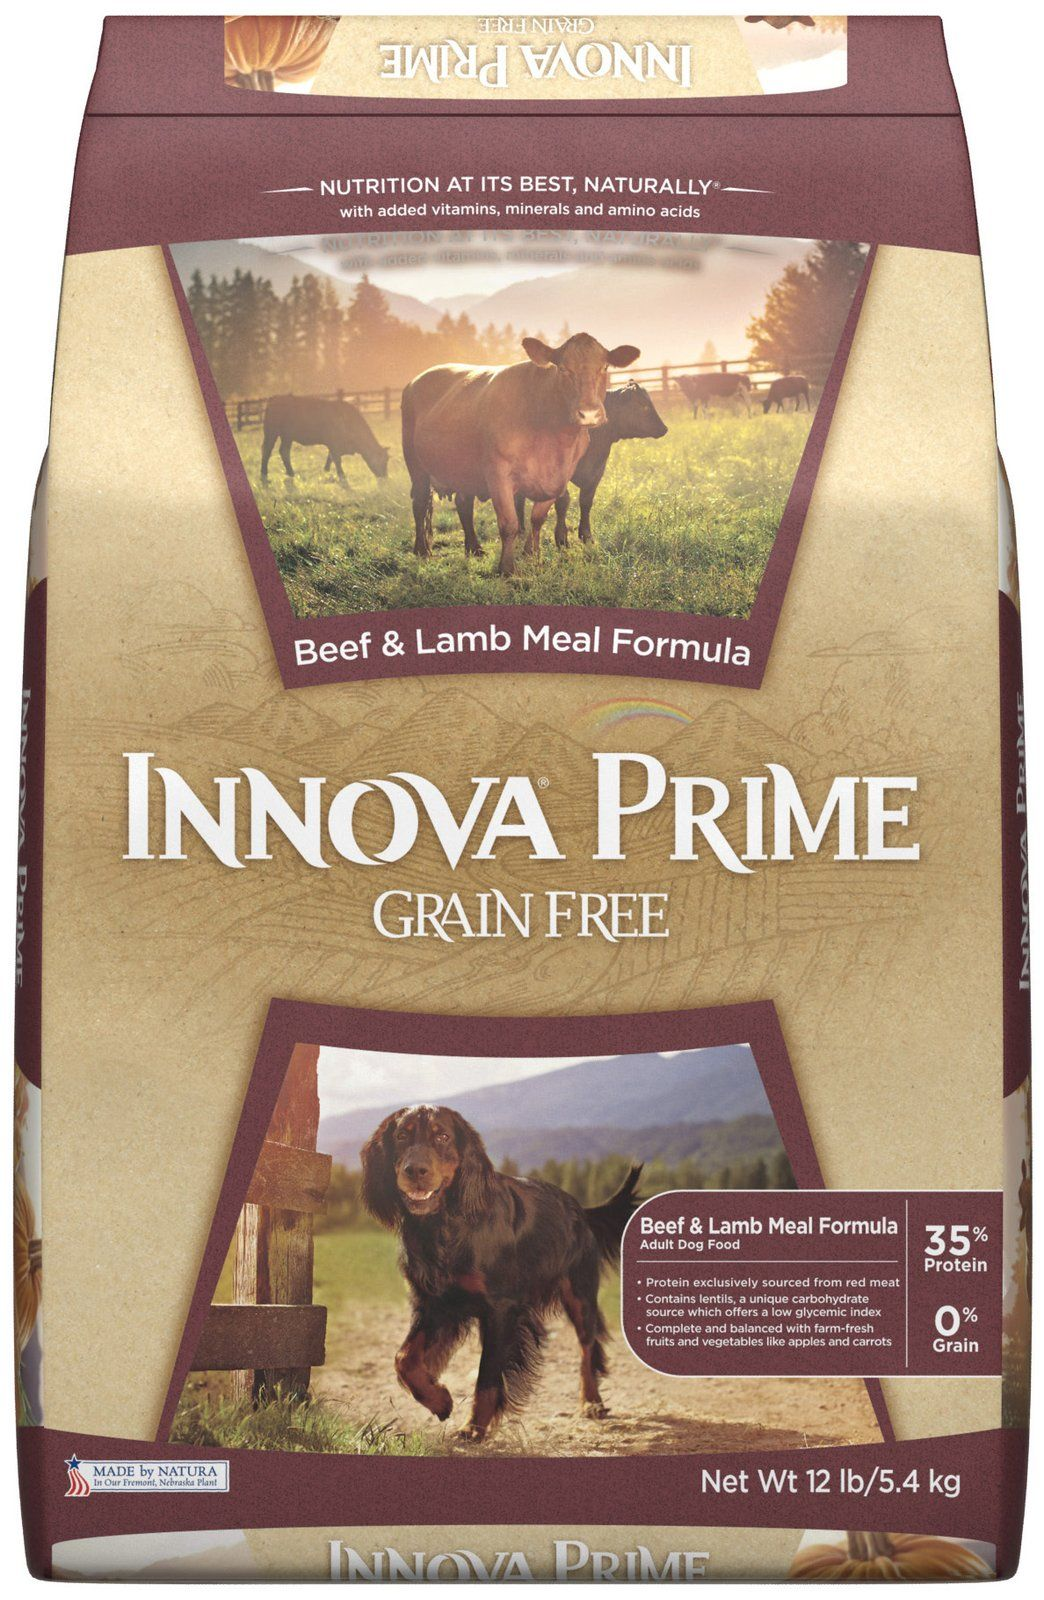 Best Grain Free Dog Food Without Peas And Legumes : grain, without, legumes, Grain